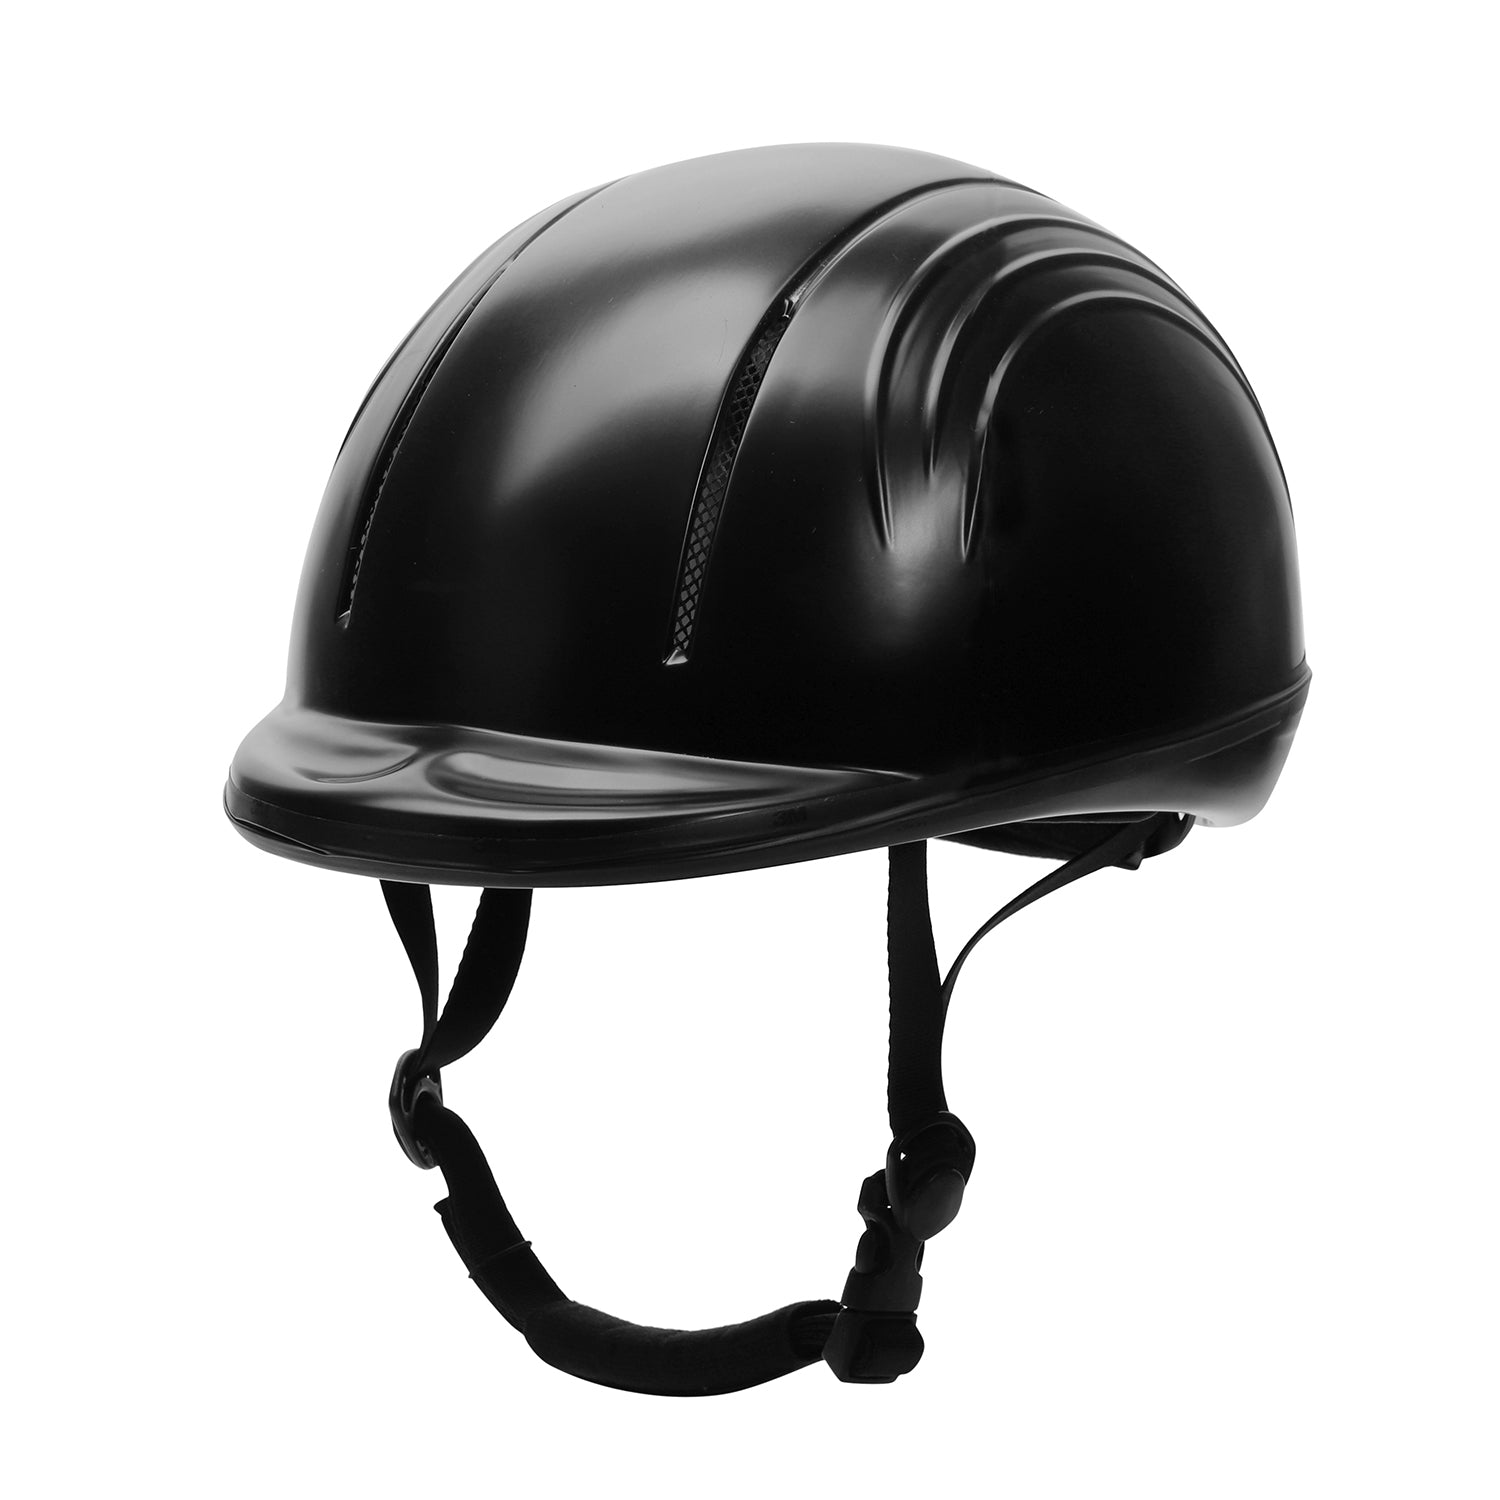 TuffRider Starter Basic Horse Riding Helmet Protective Head Gear for Equestrian Riders - SEI Certified - Black_3477